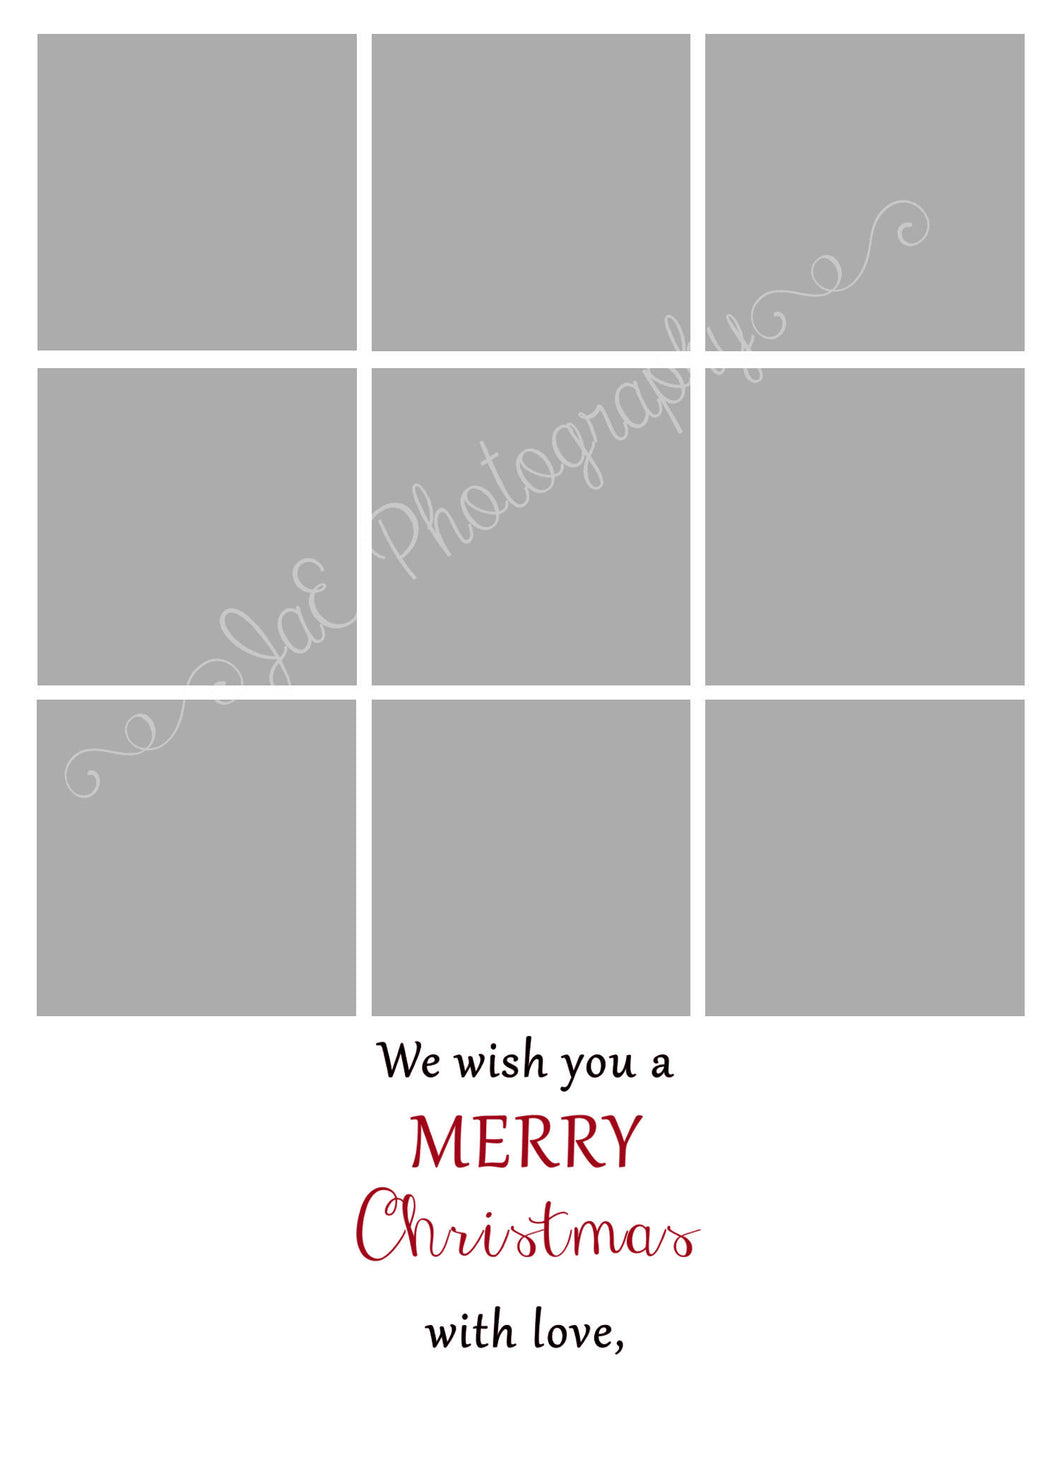 Christmas Card 9 Box Template for a 5x7